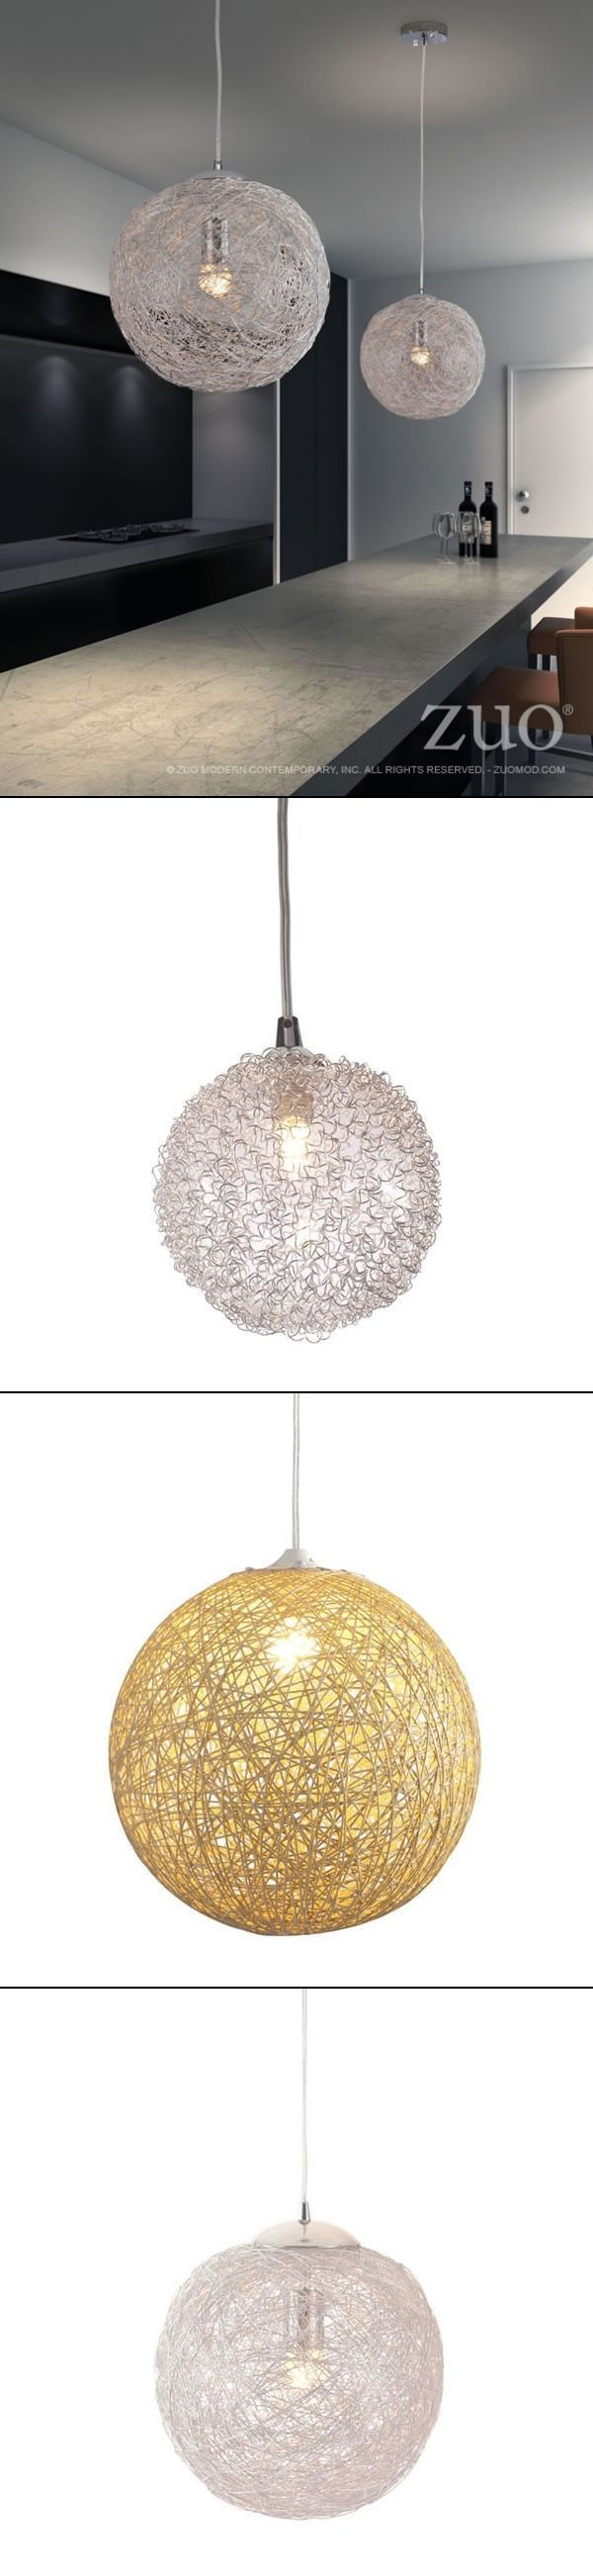 Great  for above the kitchen island, breakfast nook, bar area or any room..  All 3 of these options are priced under $100.00 currently! The Zuo Modern Cassius Ceiling Lamp, Opulence Ceiling Lamp and Continuity Ceiling Lamp.